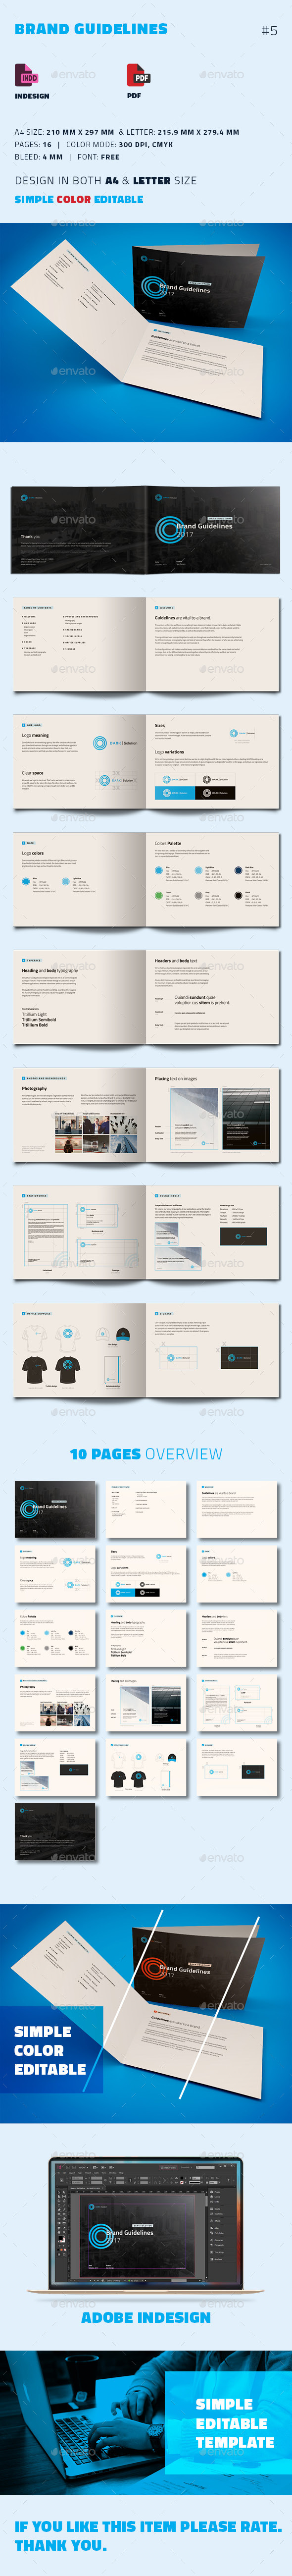 Brand Guidelines - Informational Brochures